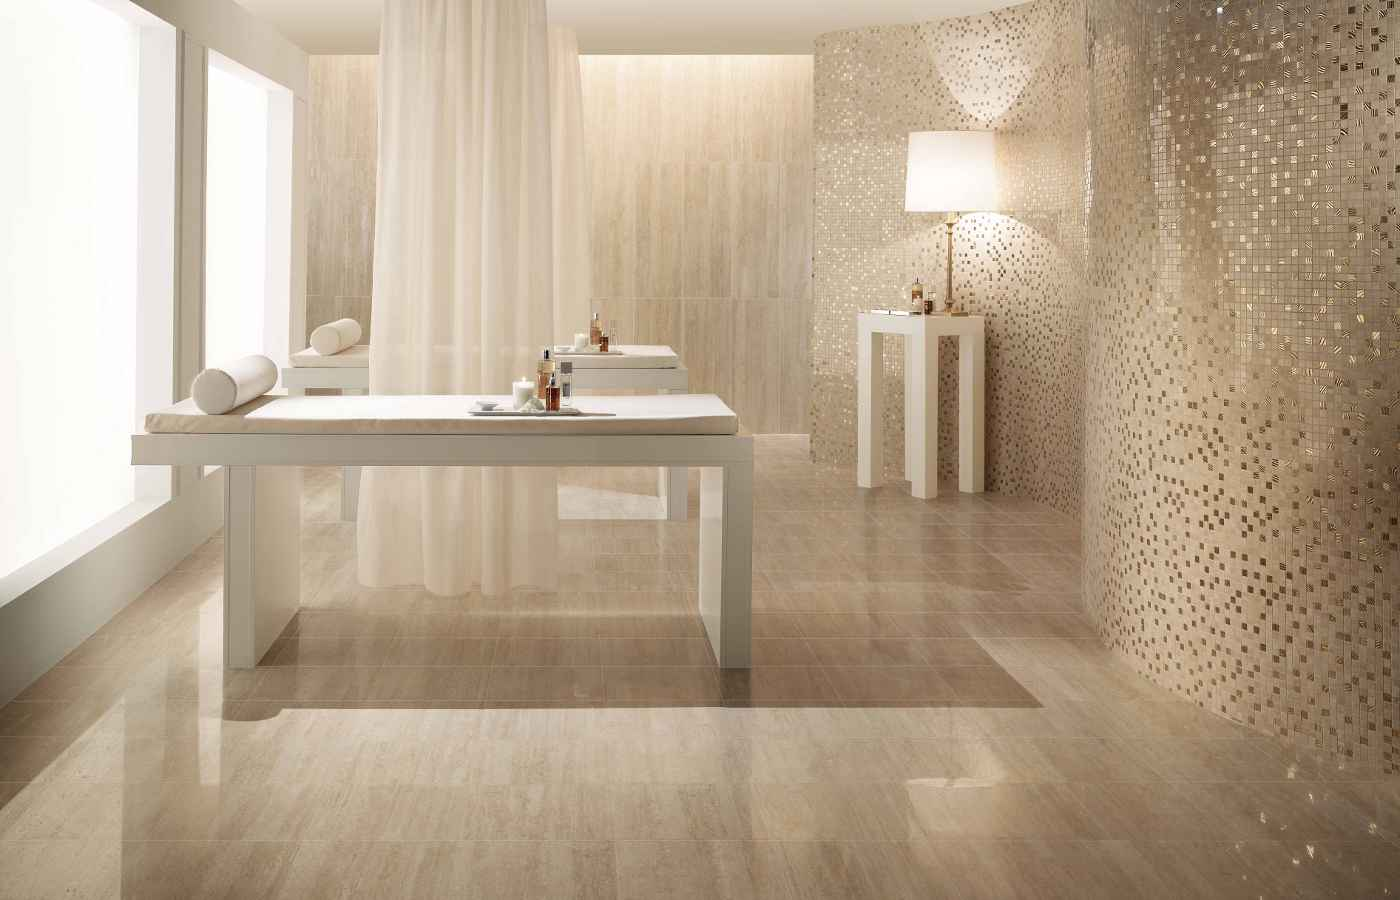 Porcelain tile flooring benefits for Flooring for bathroom ideas